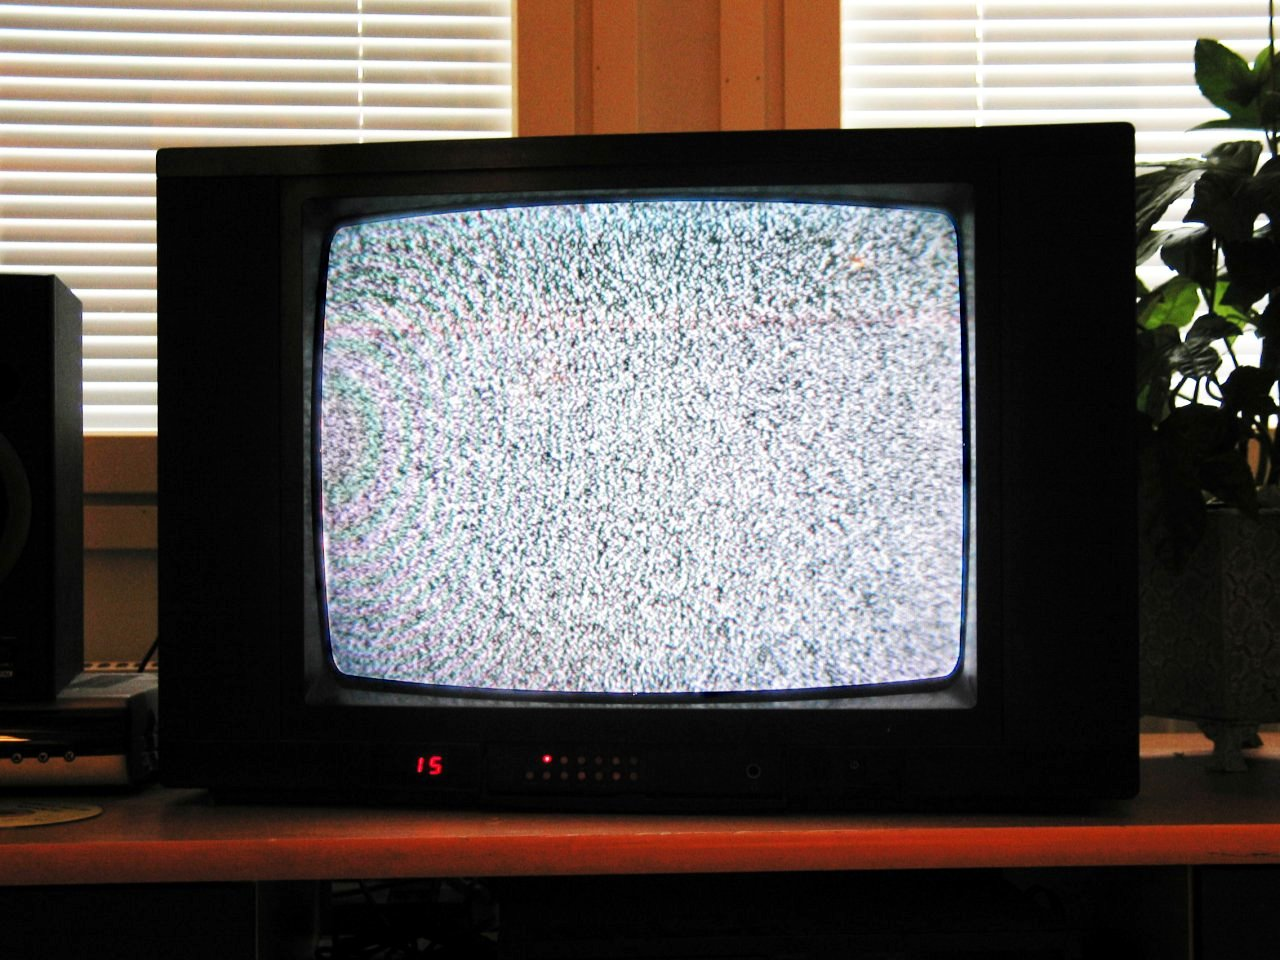 Why TV Ads Might Not Be the Most Effective Use of Your Medical Practice's Marketing Dollars